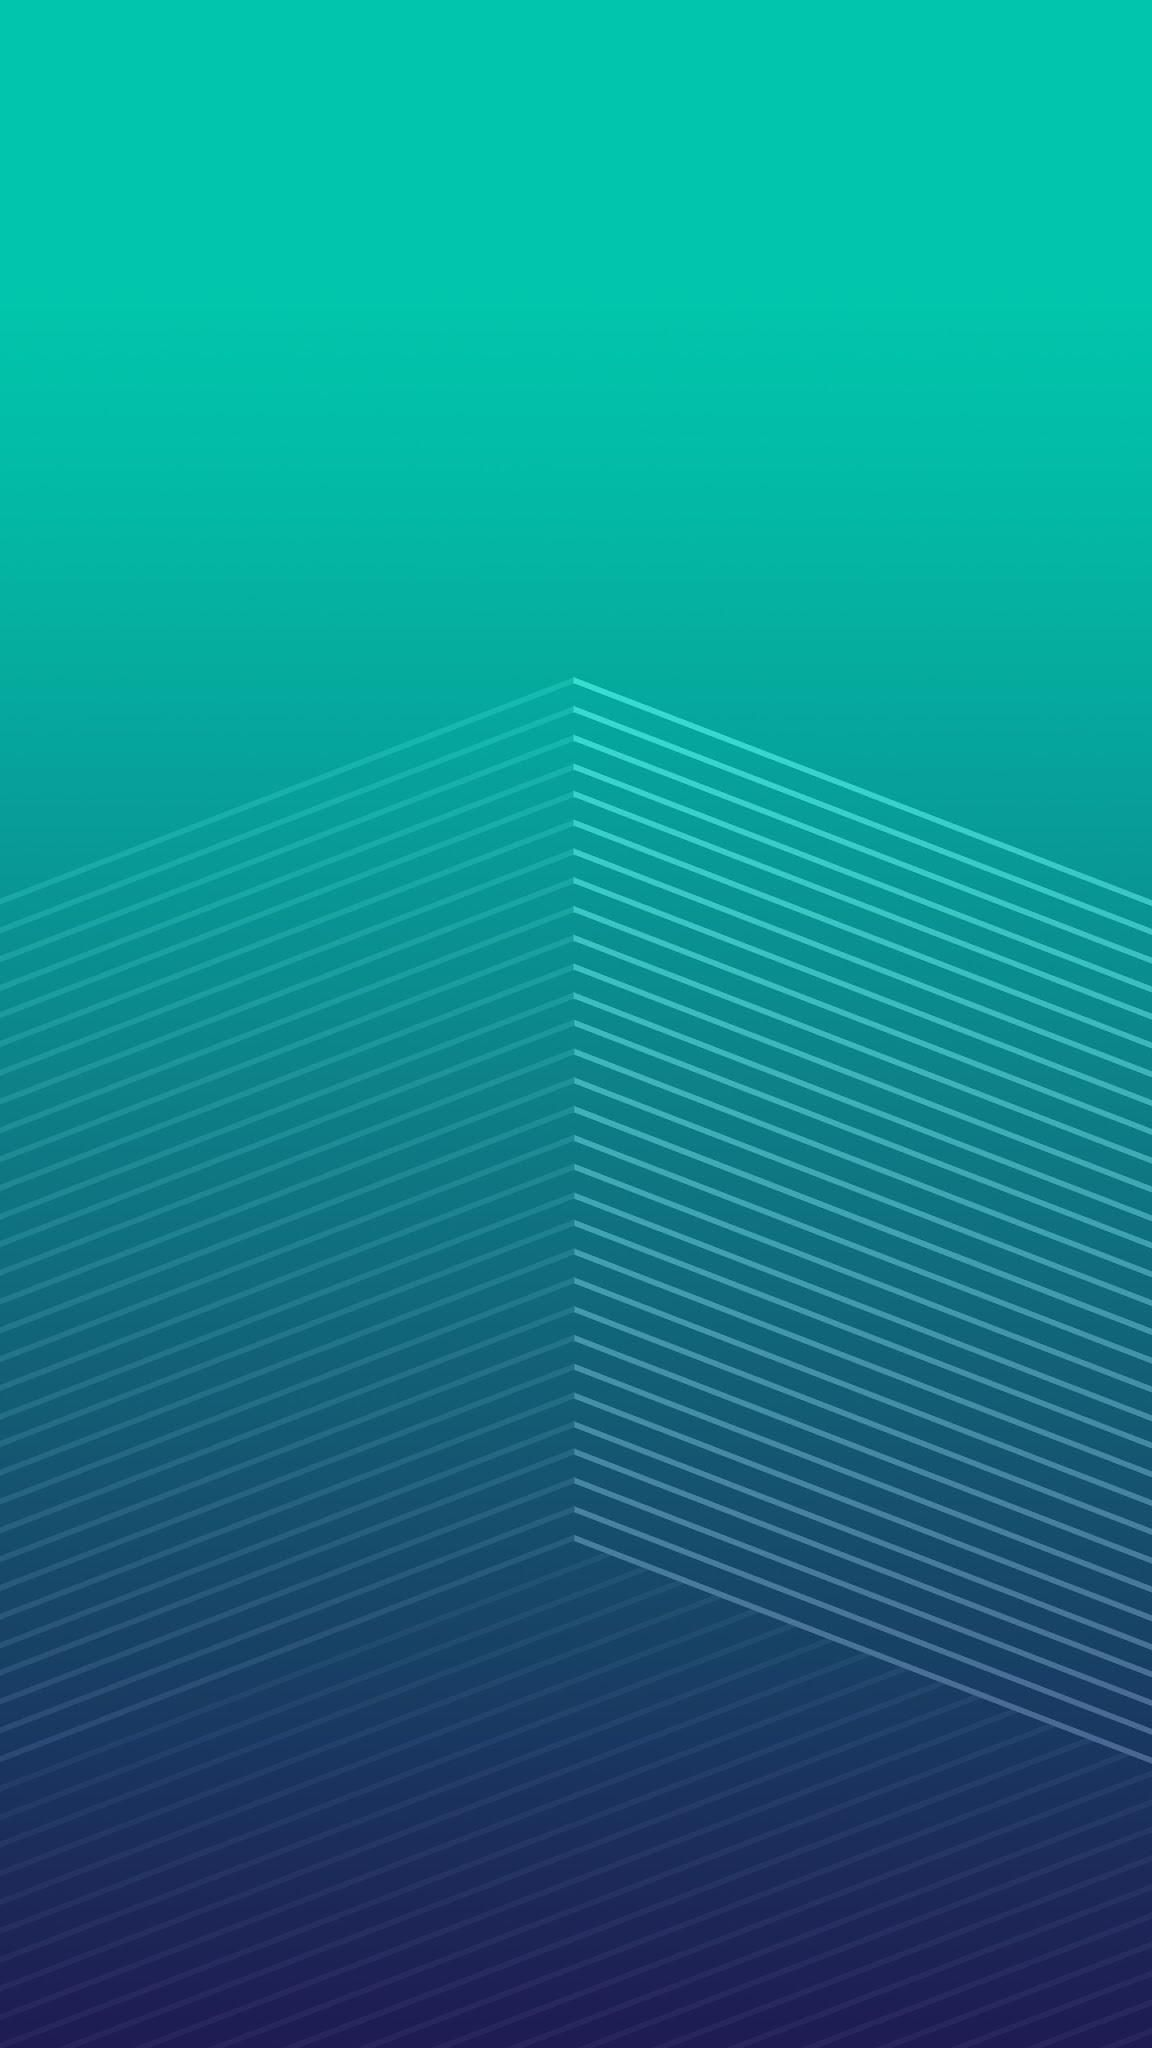 Phone Wallpaper Hd Abstract Wallpaper Minimalist Wallpaper Colourful Wallpaper Iphone